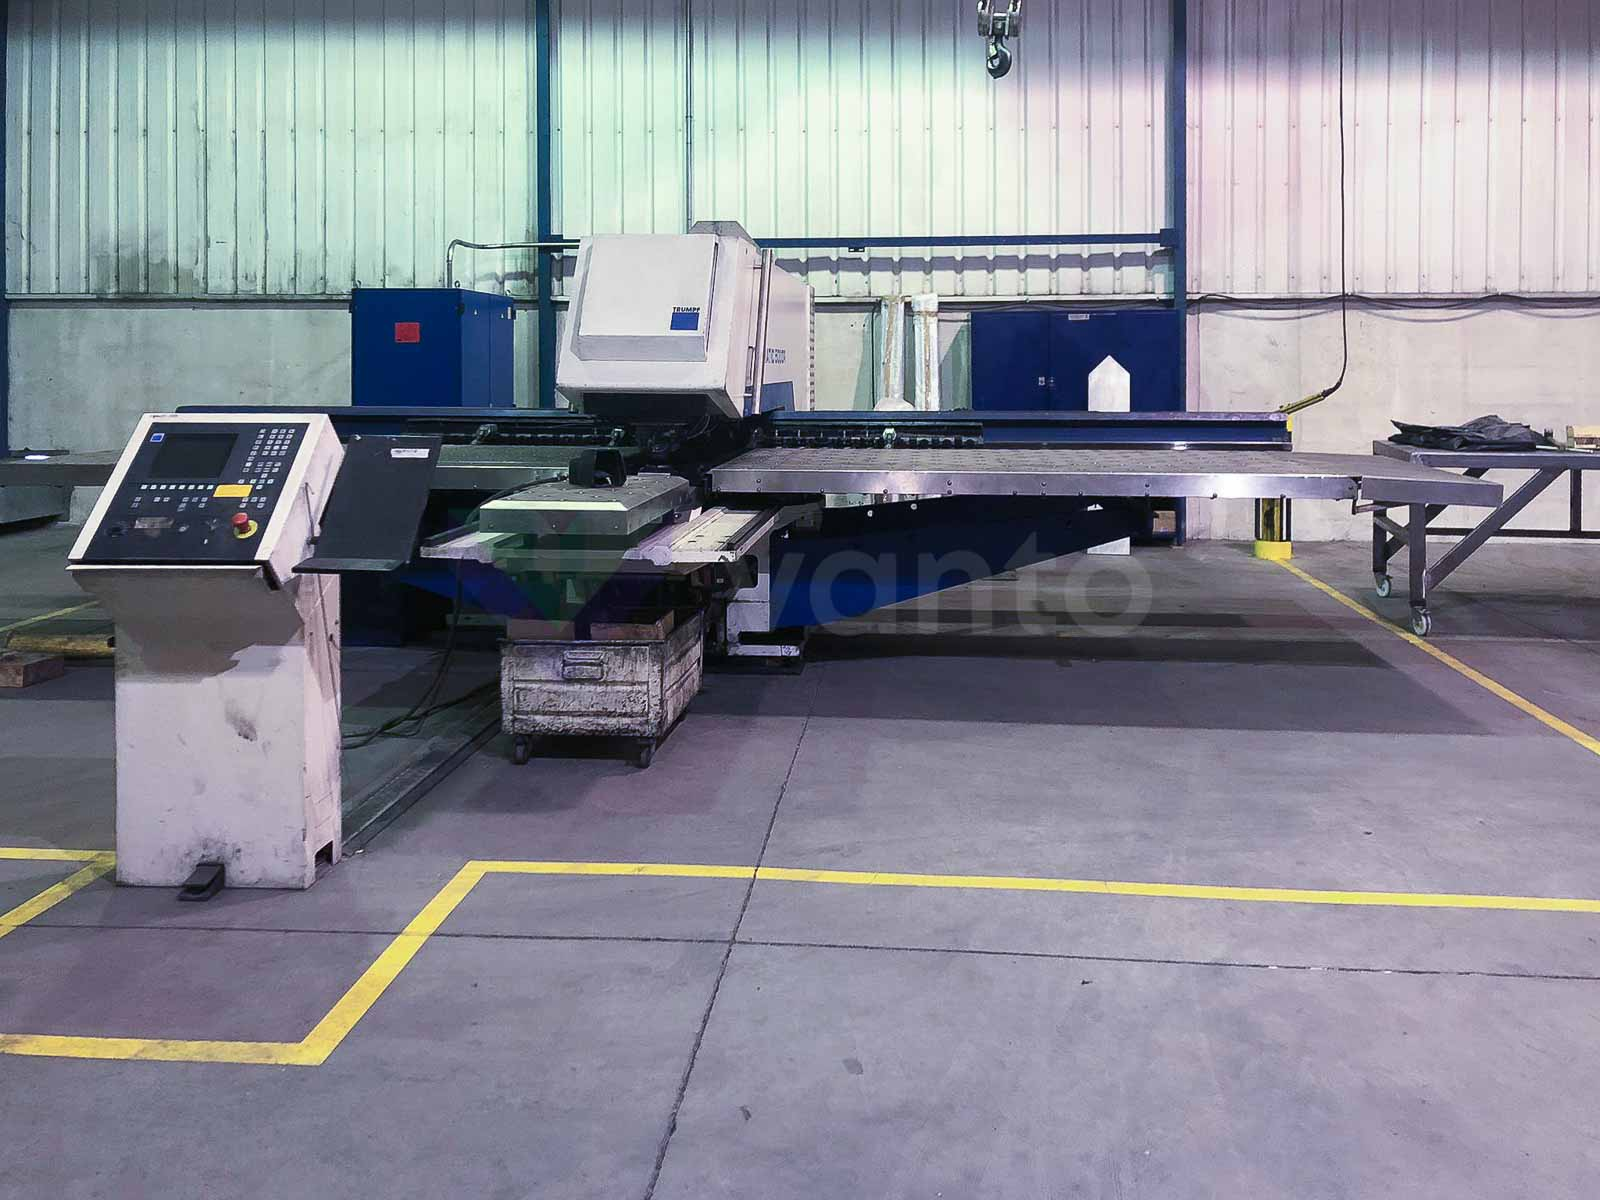 TRUMPF TRUMATIC 5000R CNC punching machine (2000) id10518